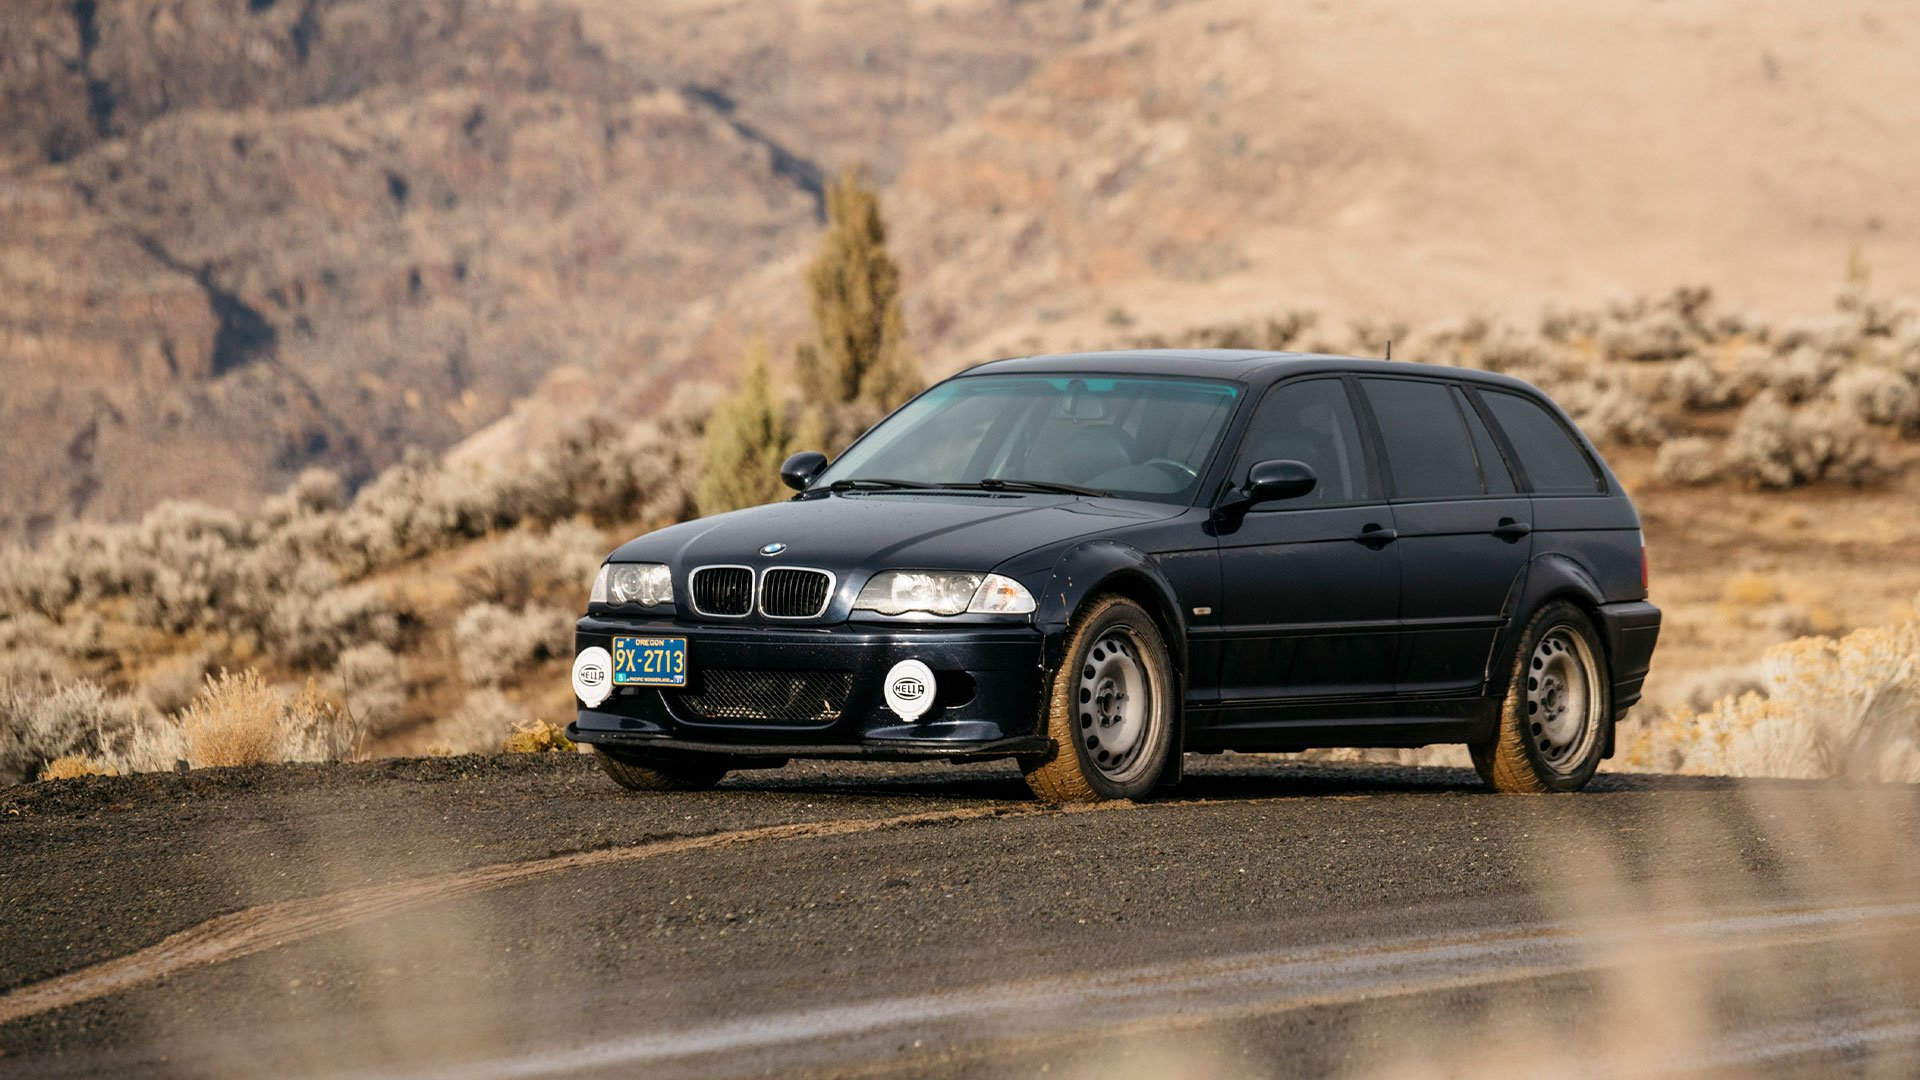 BMW E46 M3xi - An M3-Powered BMW Rally Wagon, Ready For (Almost) Anything